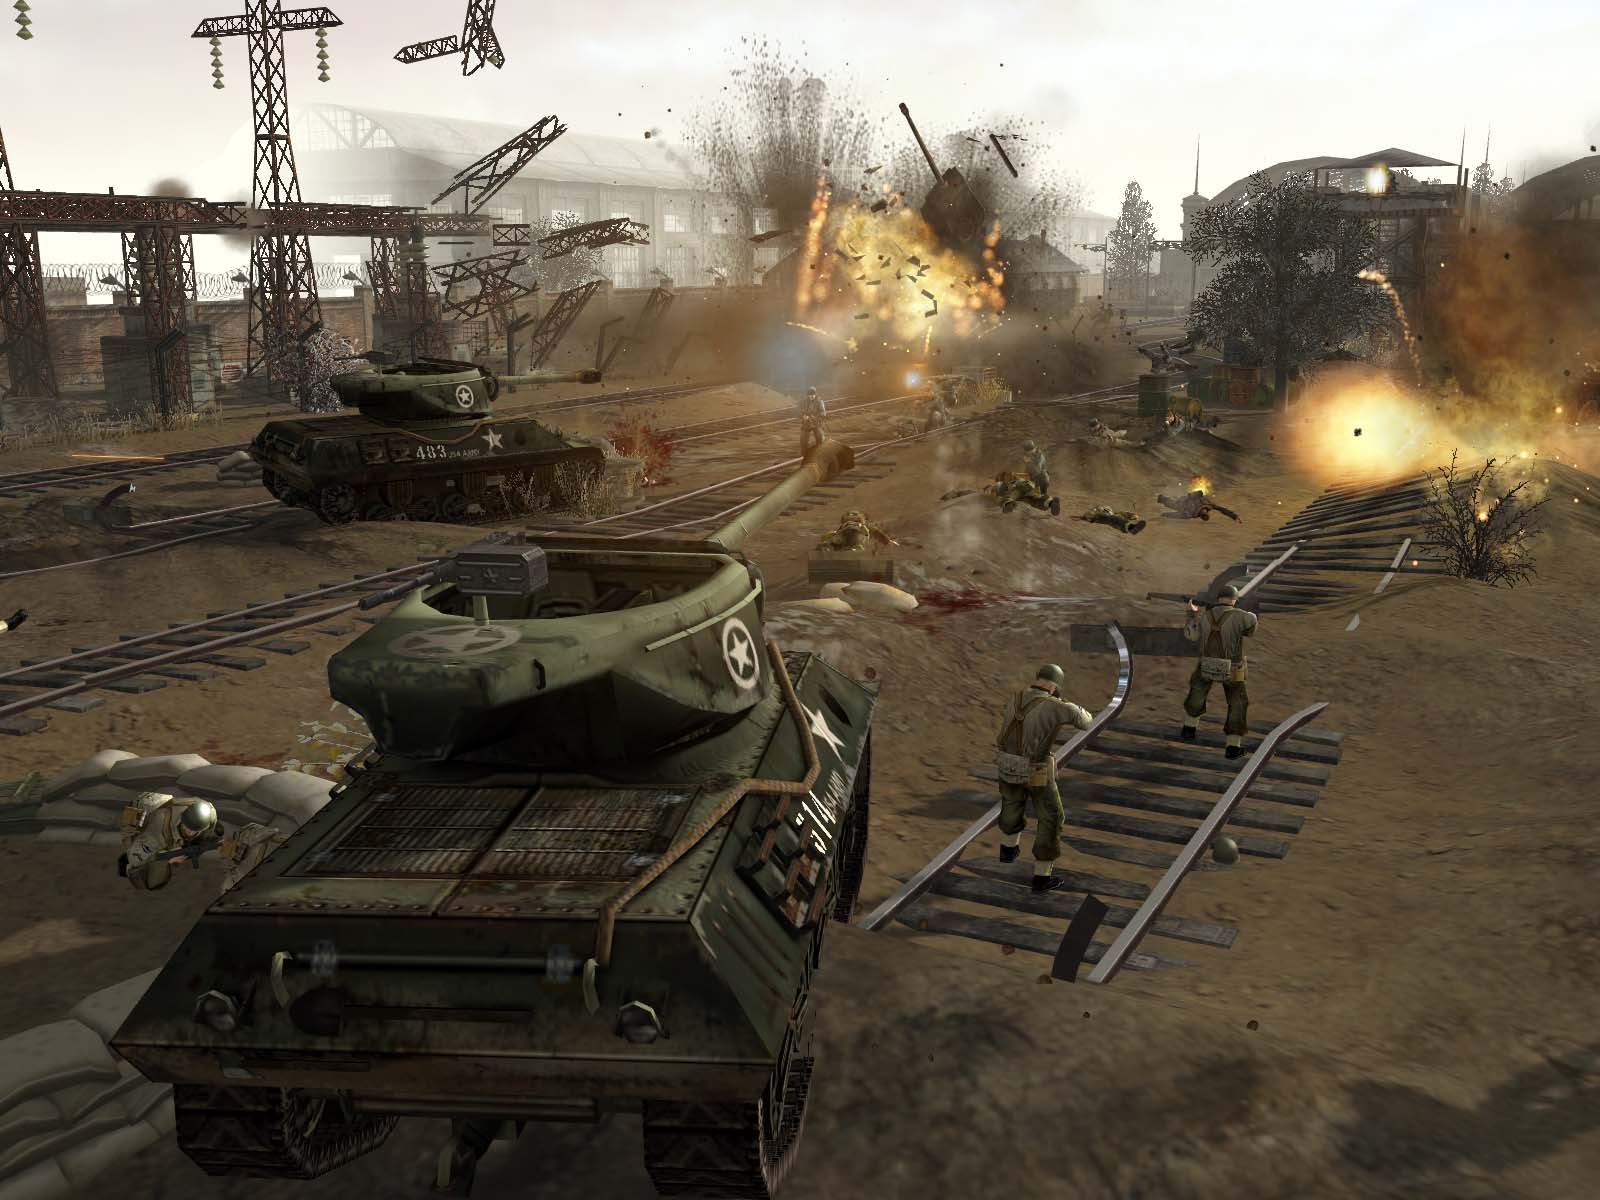 wargaming video games - photo #6